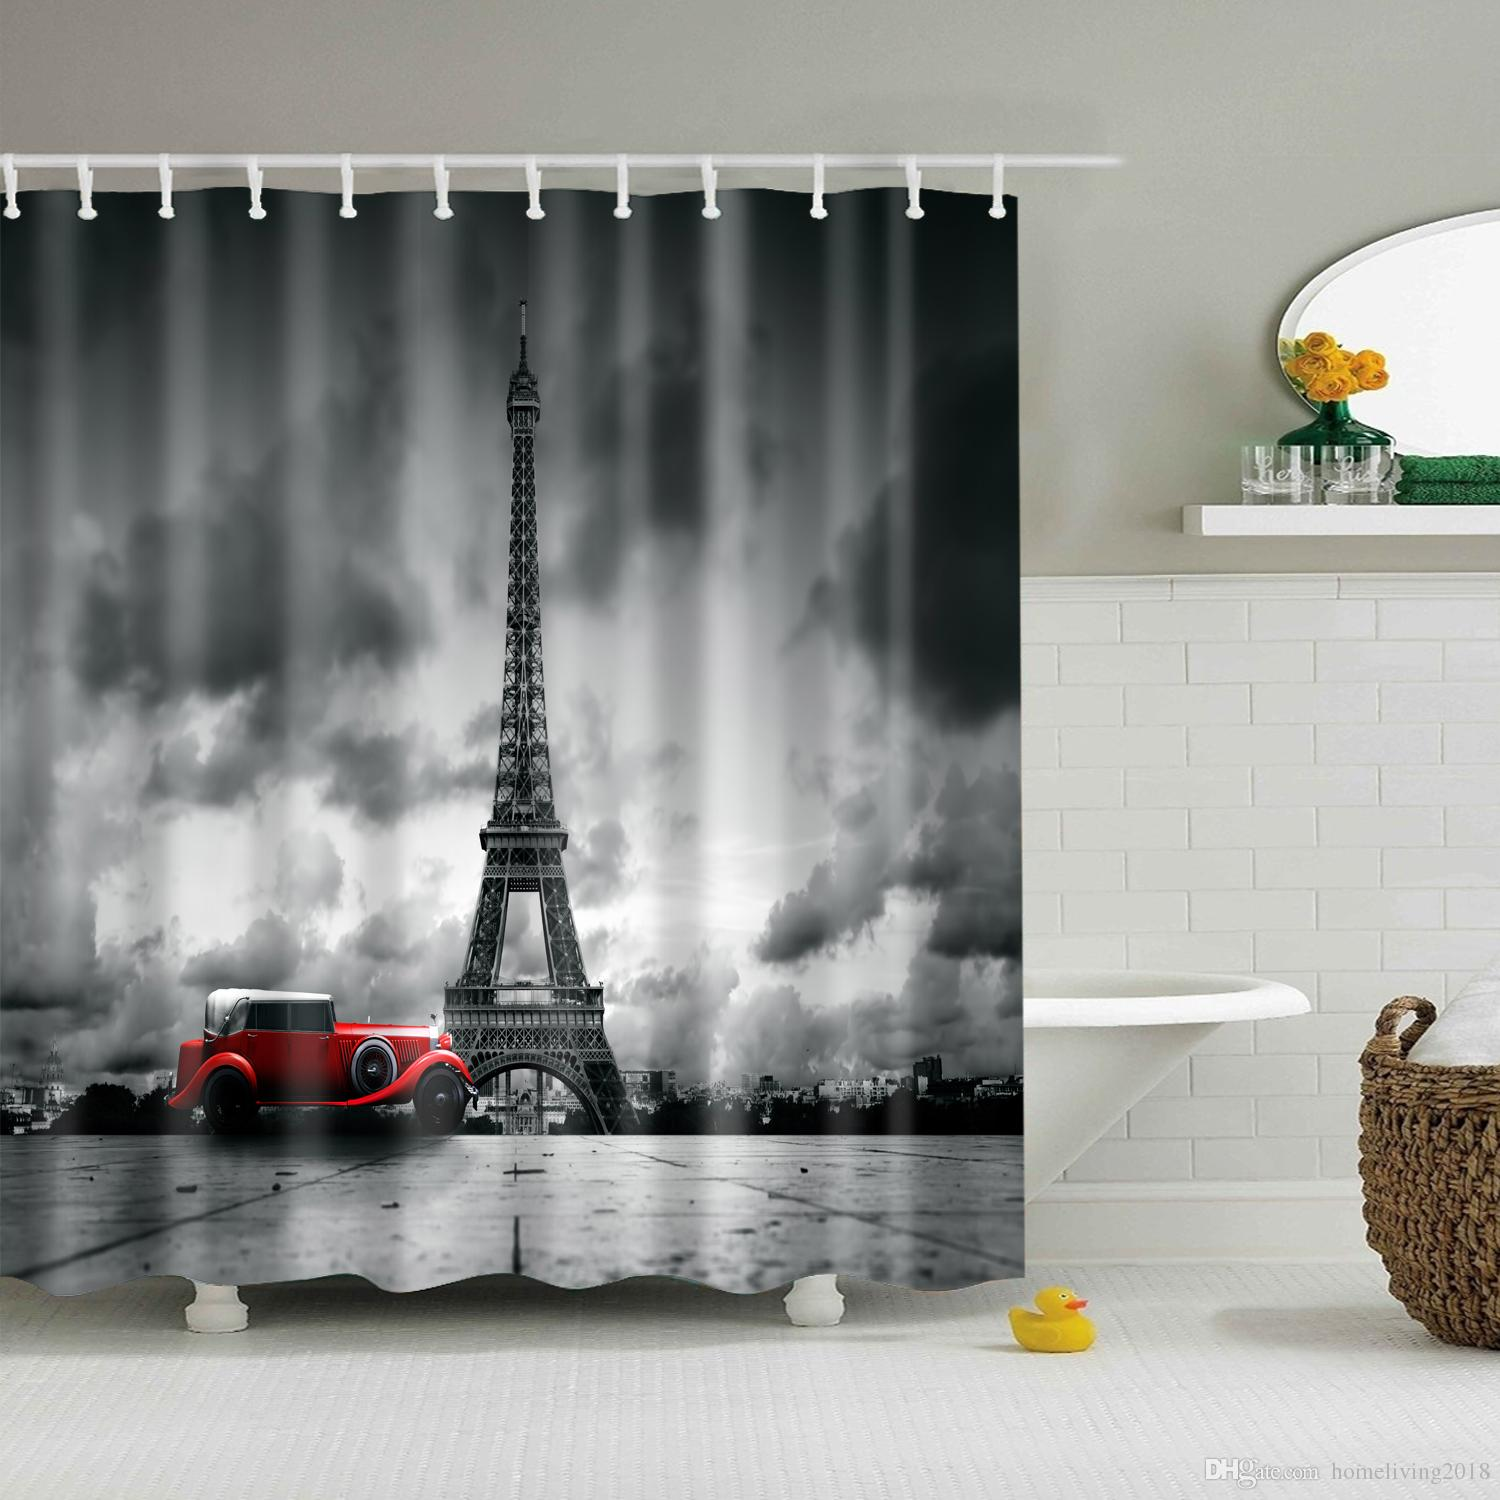 2019 Fabric Shower Curtain Country Decor Style Decorations For Bathroom Print Vintage Rustic Theme Decor Home Antiqued With Curtain Rings Hooks From